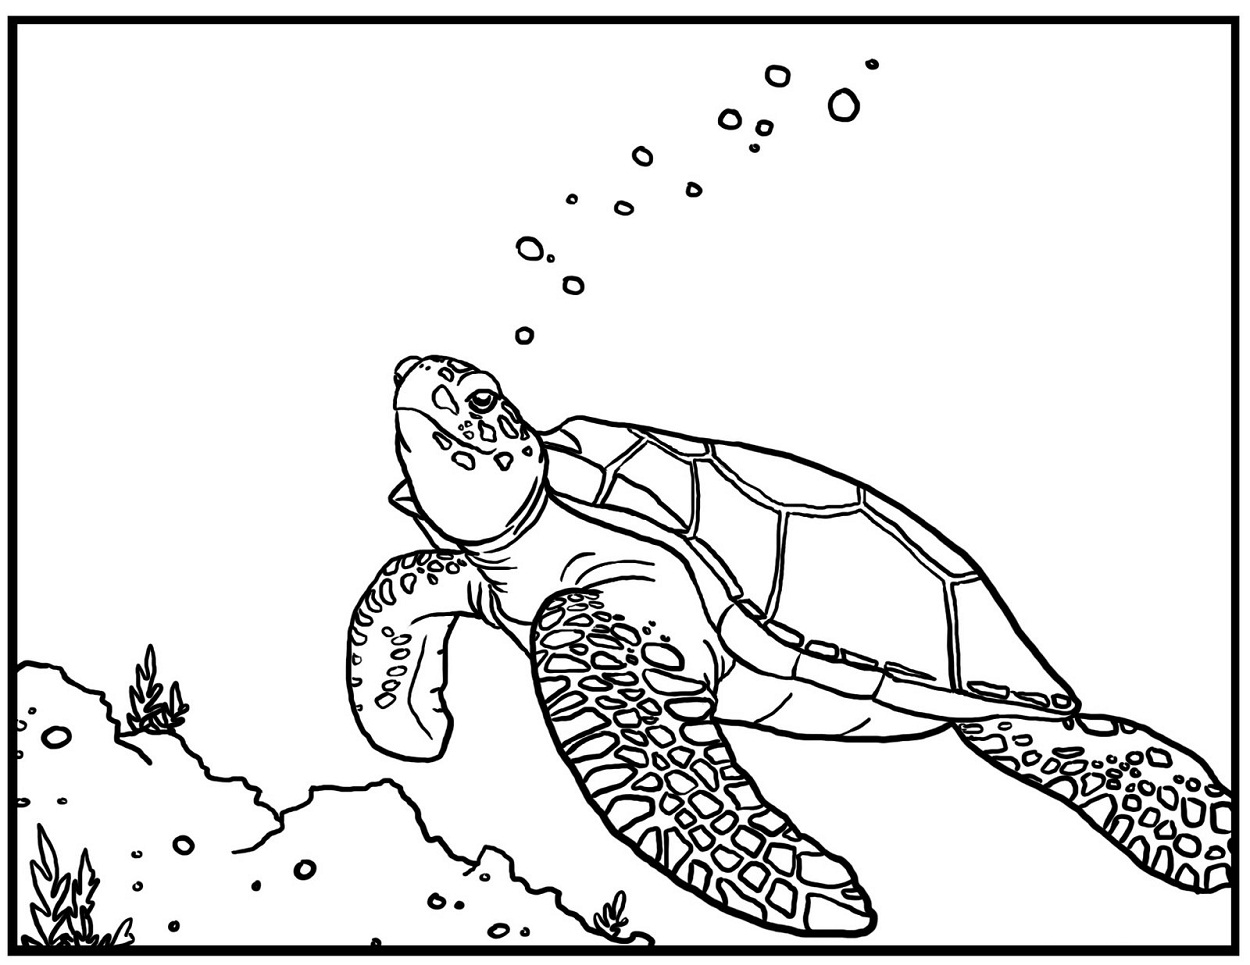 sea turtle coloring pages sea turtle printable coloring pages at getcoloringscom sea turtle pages coloring